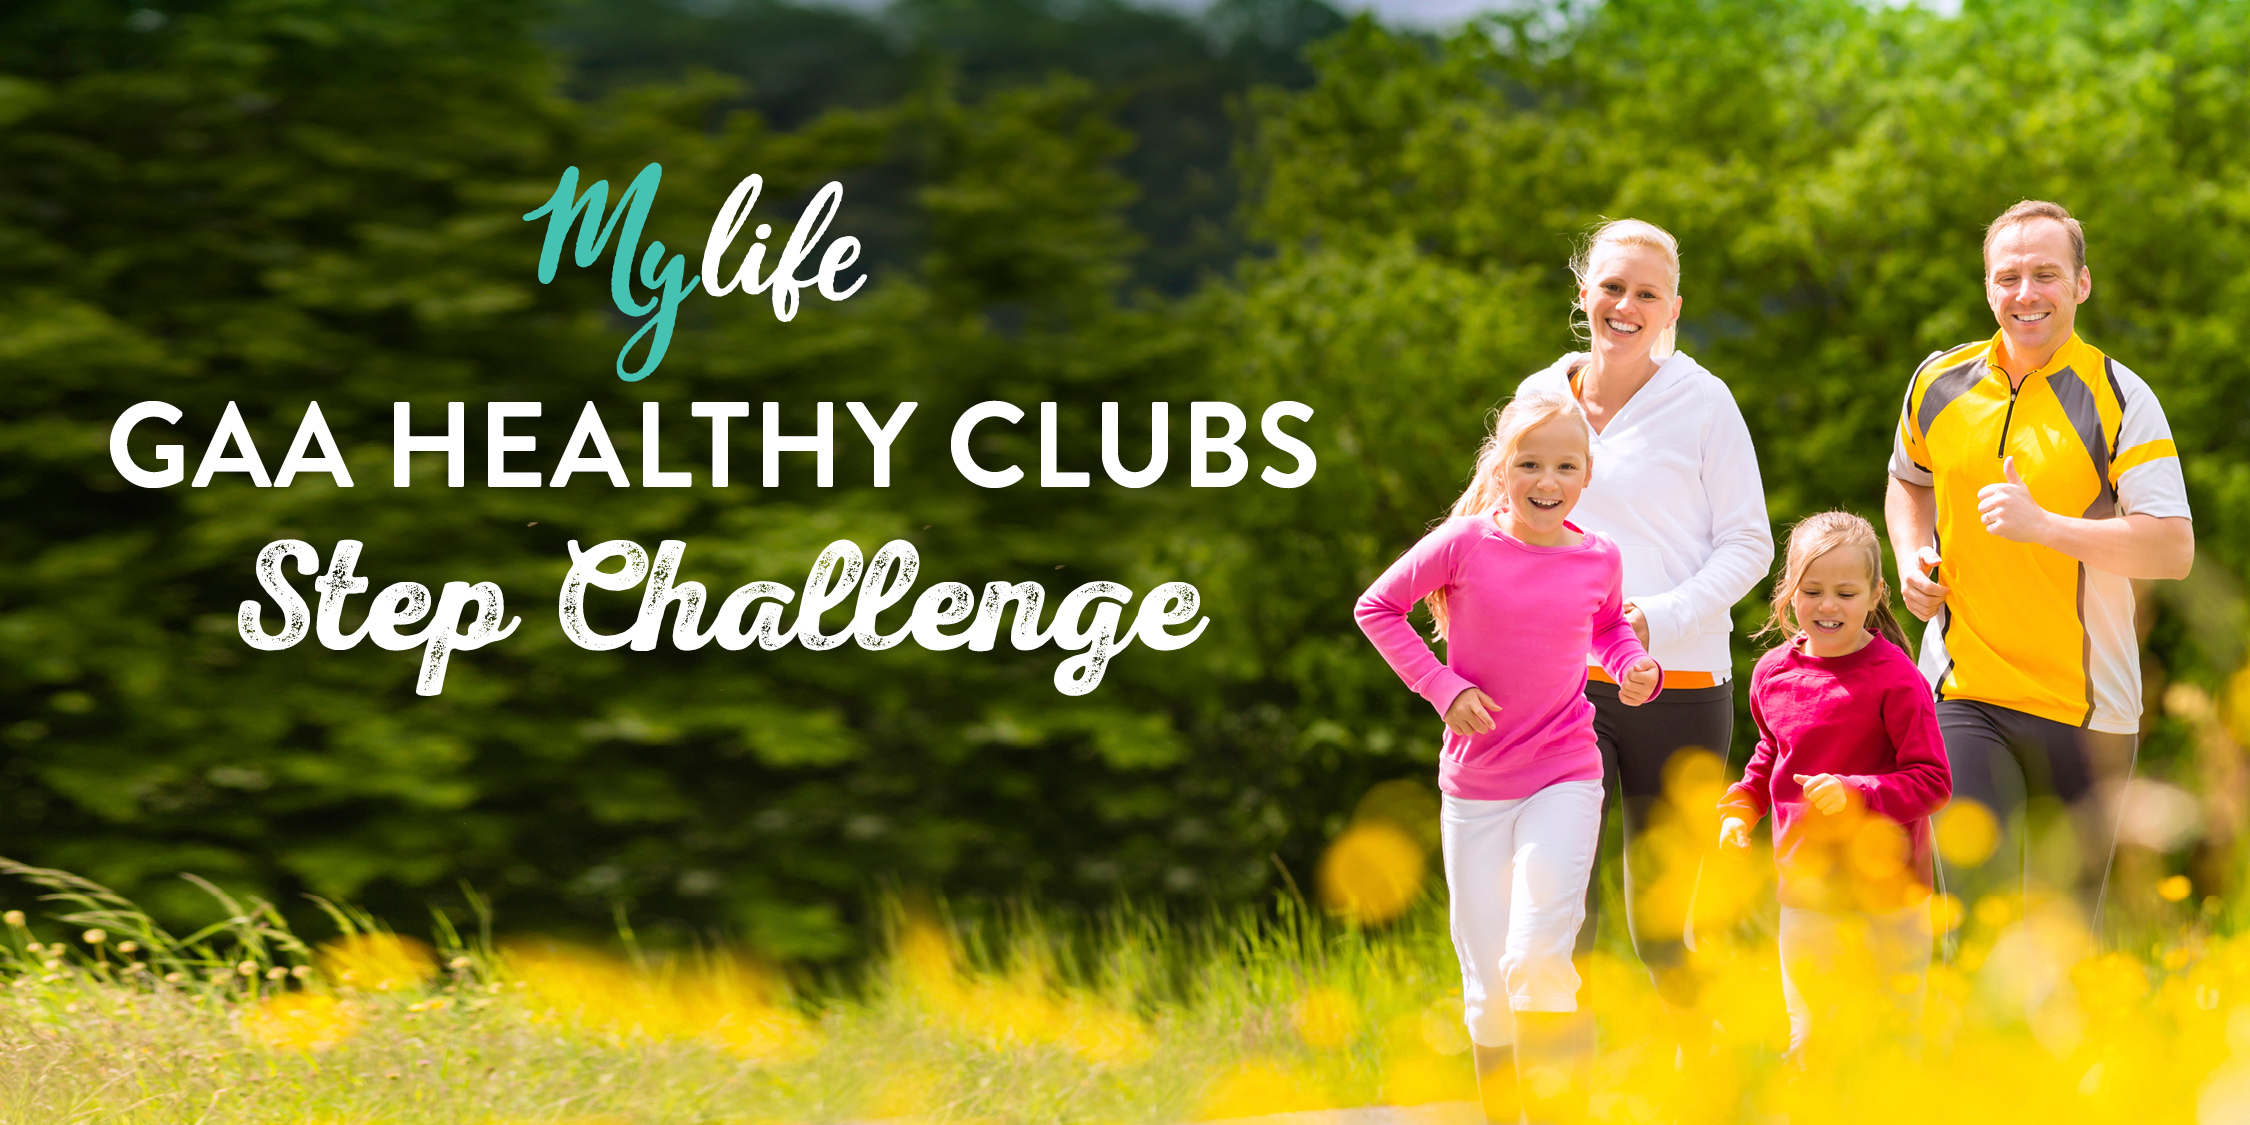 Keep active and help your club win with the Irish Life Healthy Club Steps Challenge